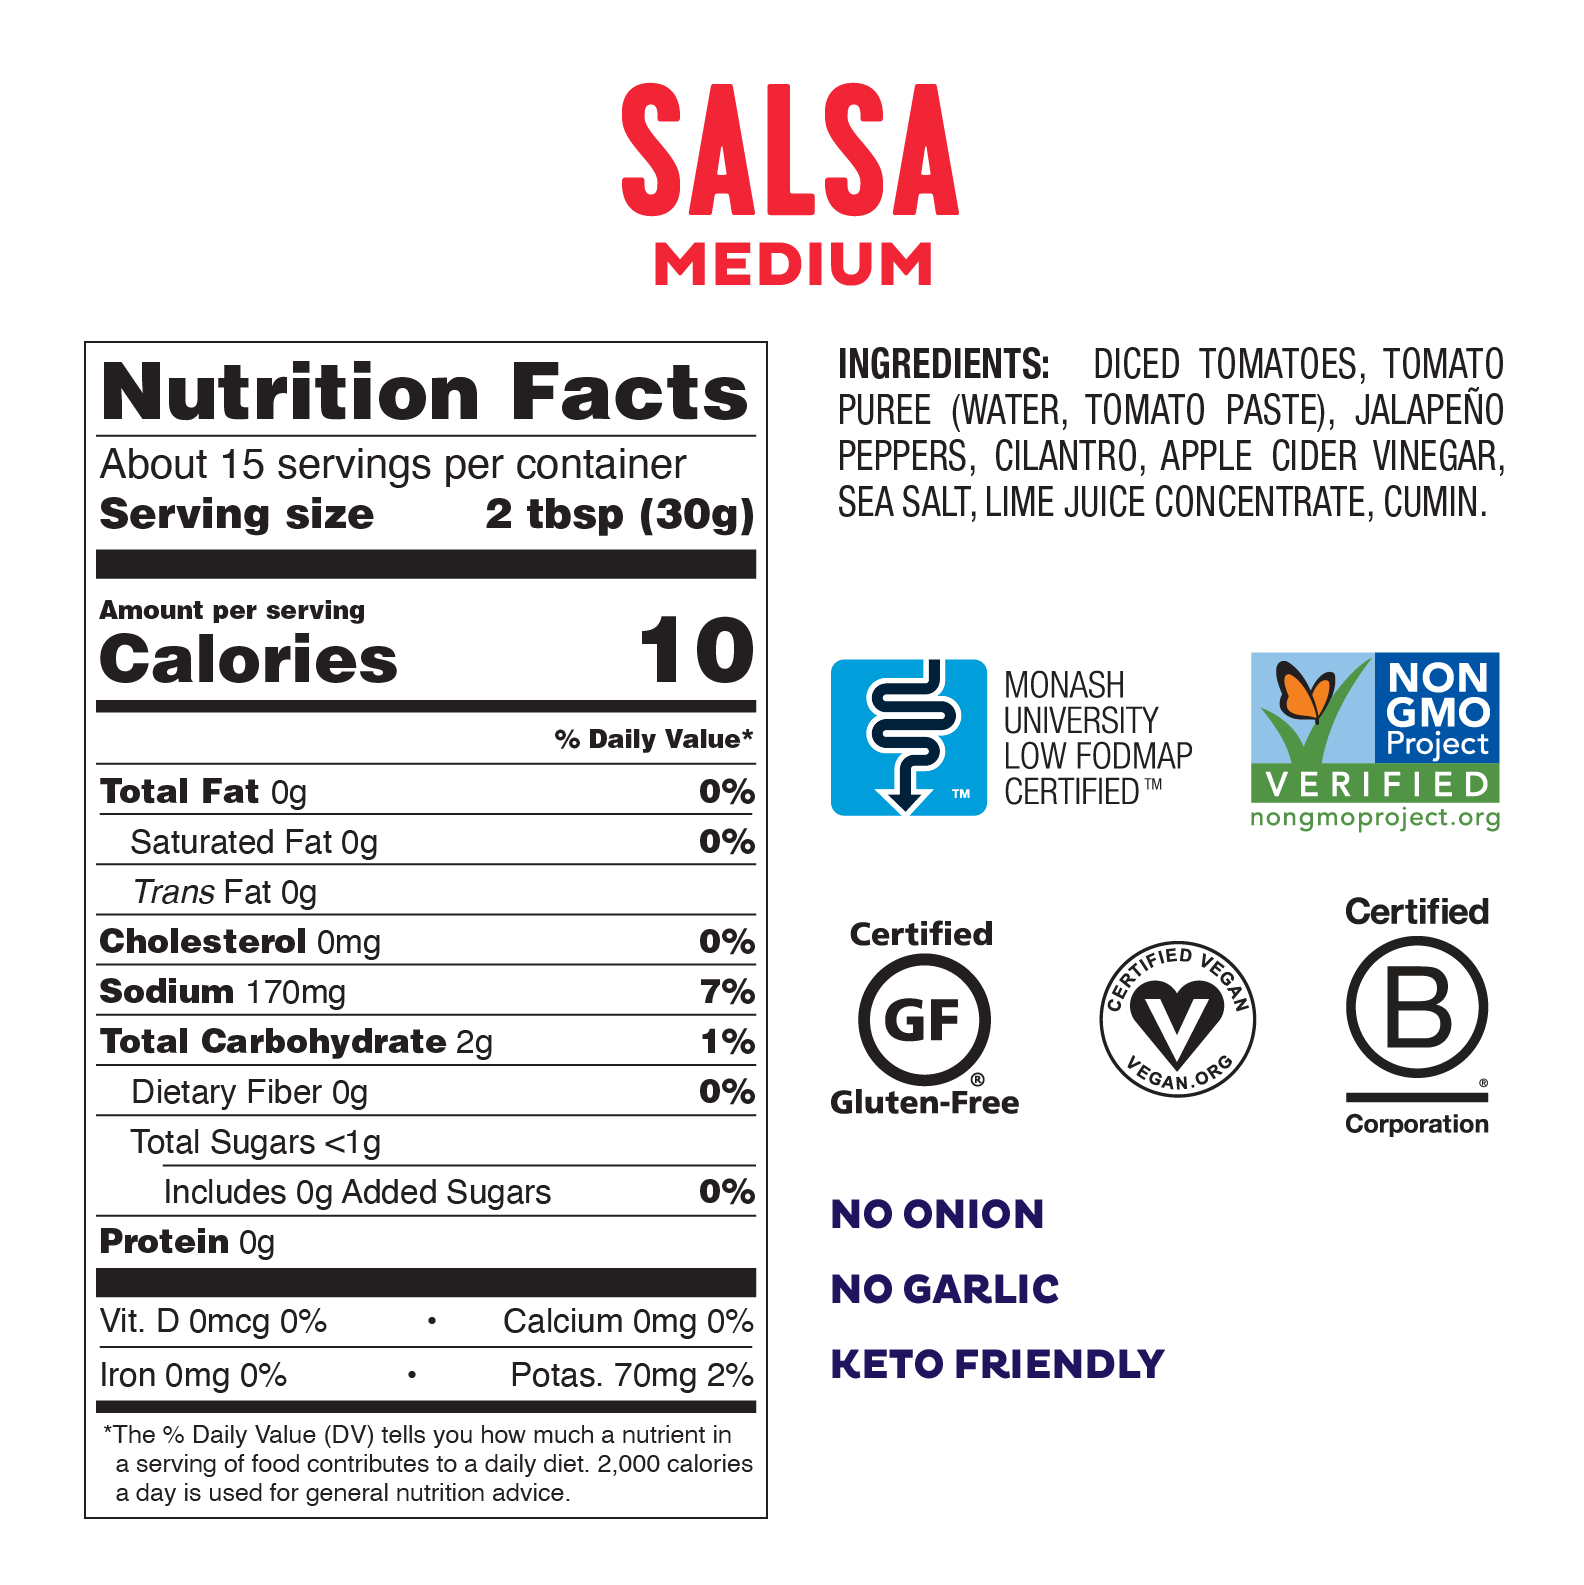 fody medium salsa ingredient label